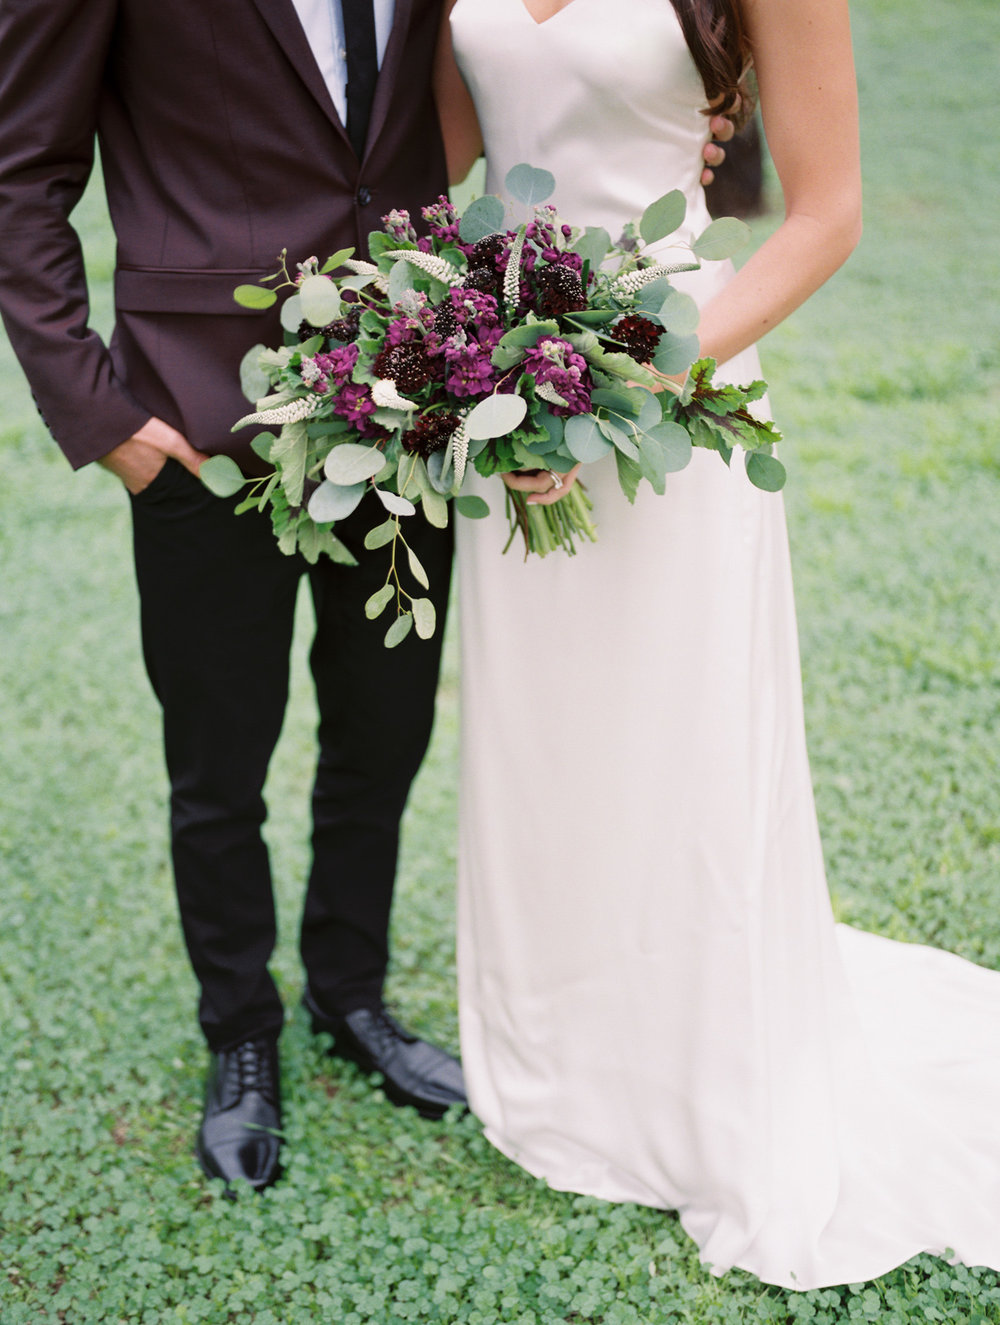 Stunning bouquet shot on film